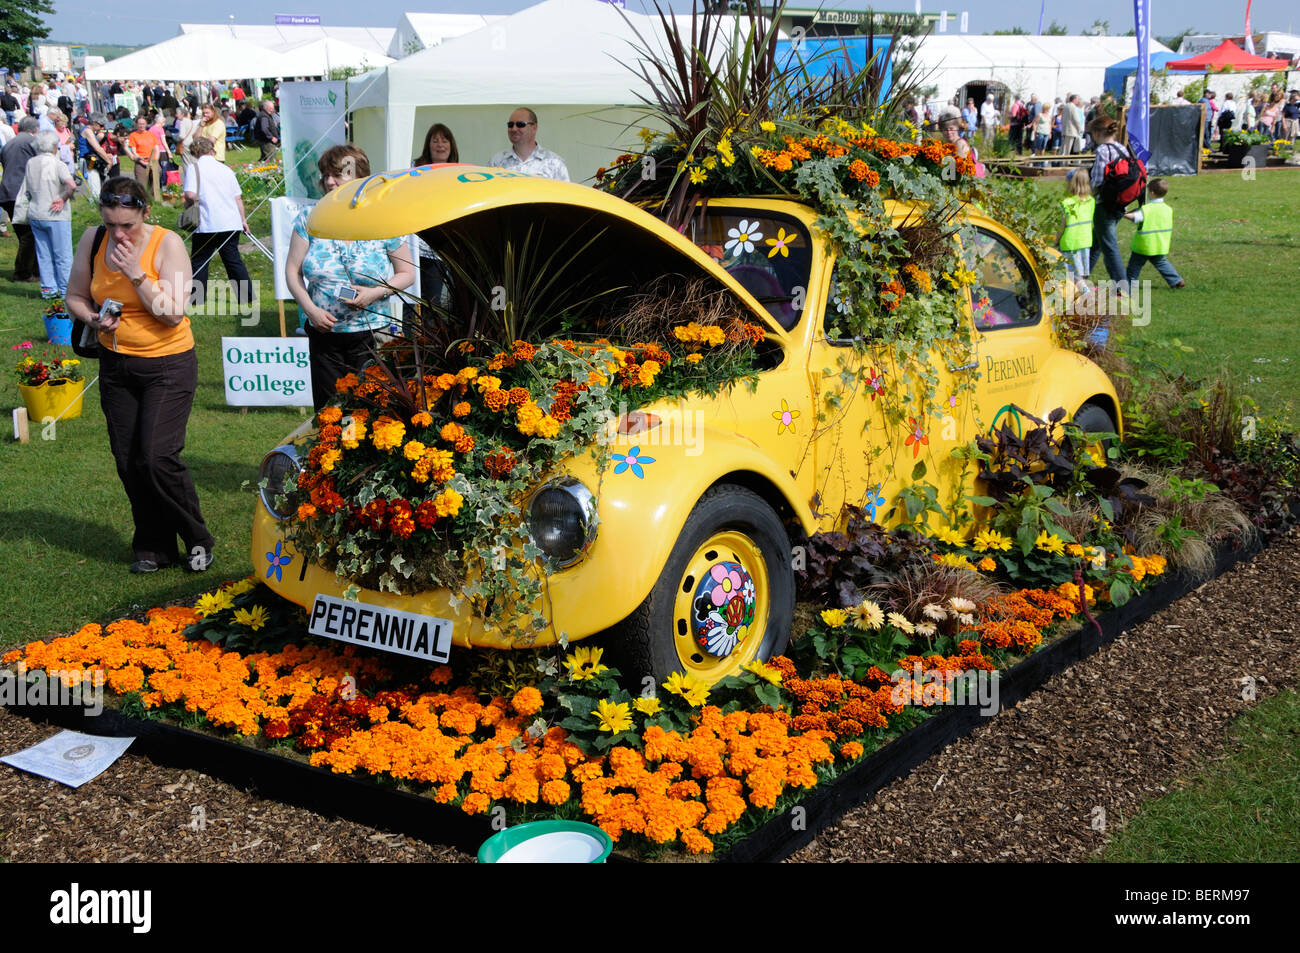 Gold Medal winner 'Perennial Petal Power' at Gardening Scotland 2009, Ingliston, Edinburgh, Scotland, UK. - Stock Image